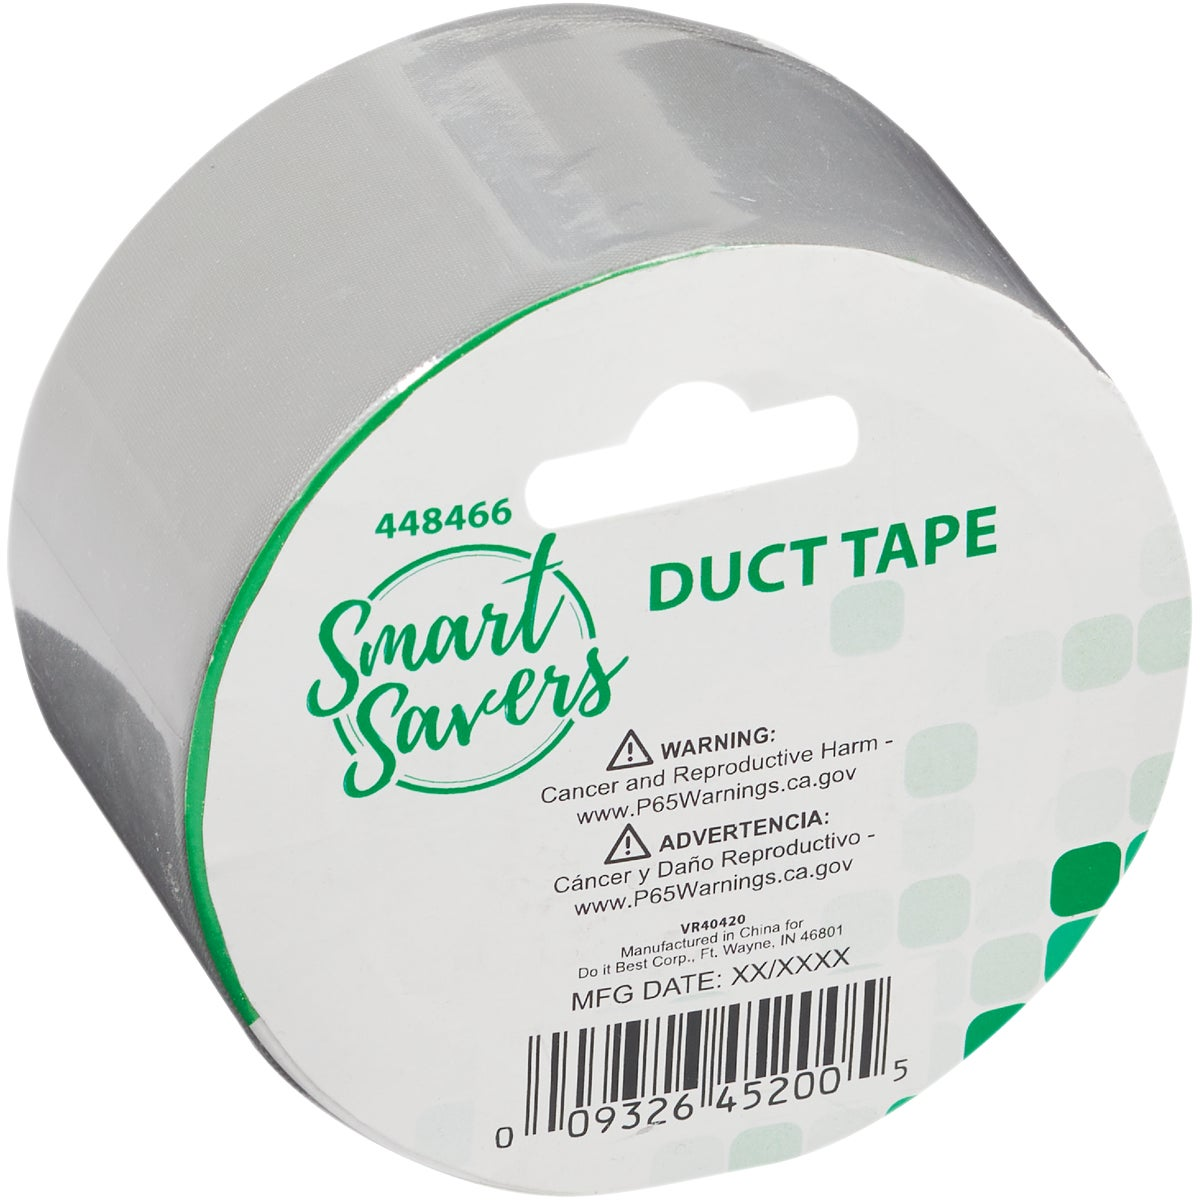 Do it Best Imports DUCT TAPE 10099